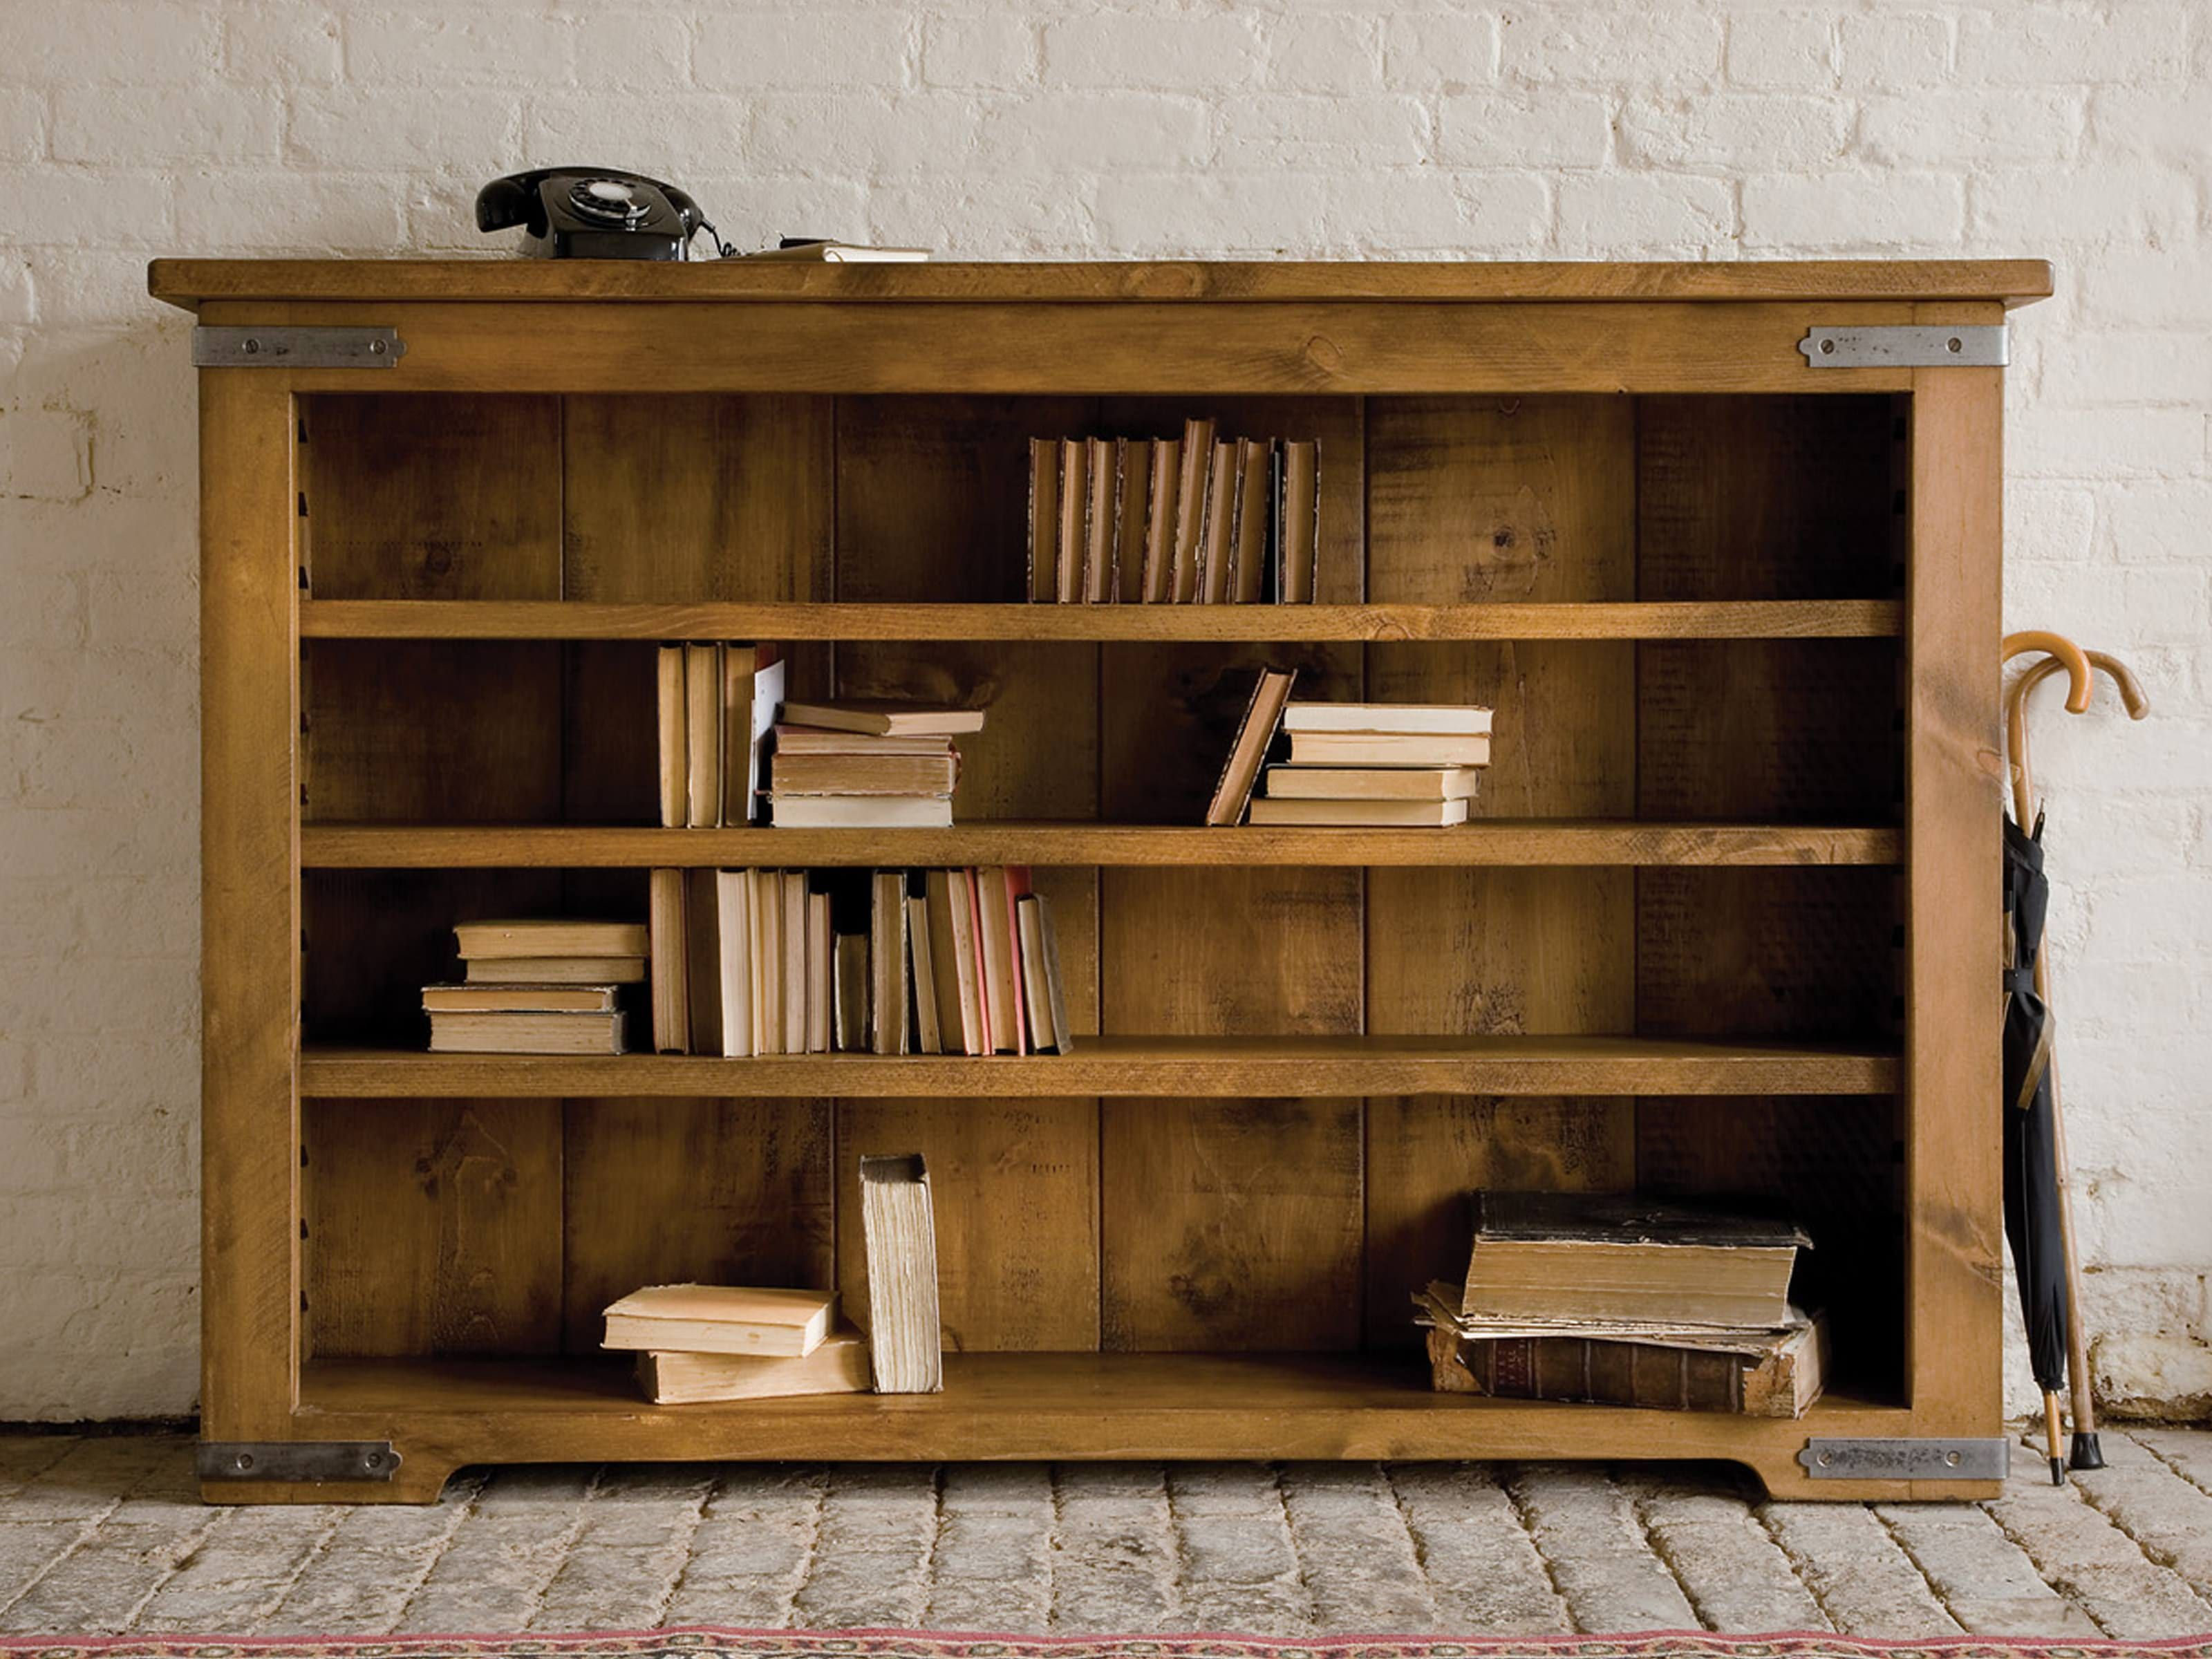 terrific unfinished oak low bookcase over stones floors and white subway brick wall panels as inspiring